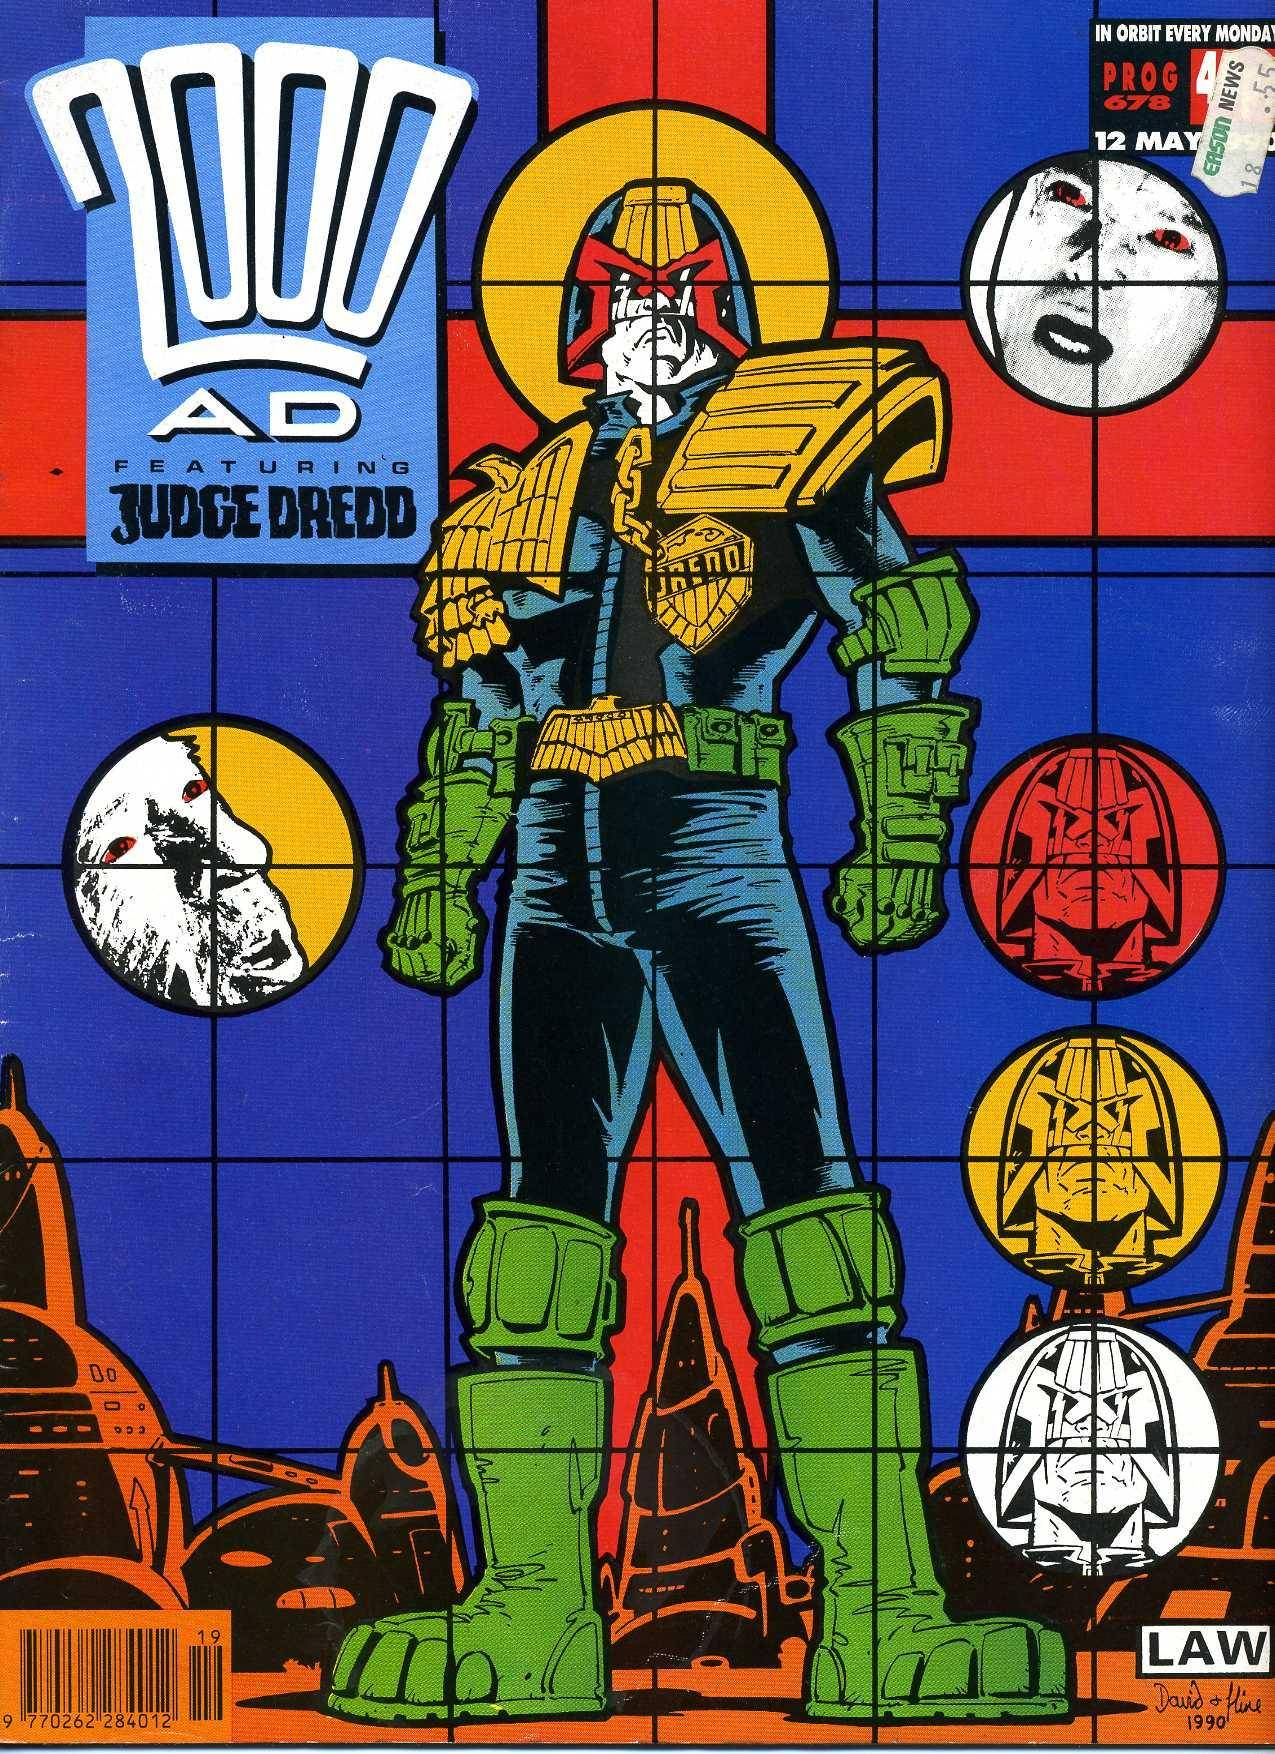 2000AD 0678 1990-05-12 flop71